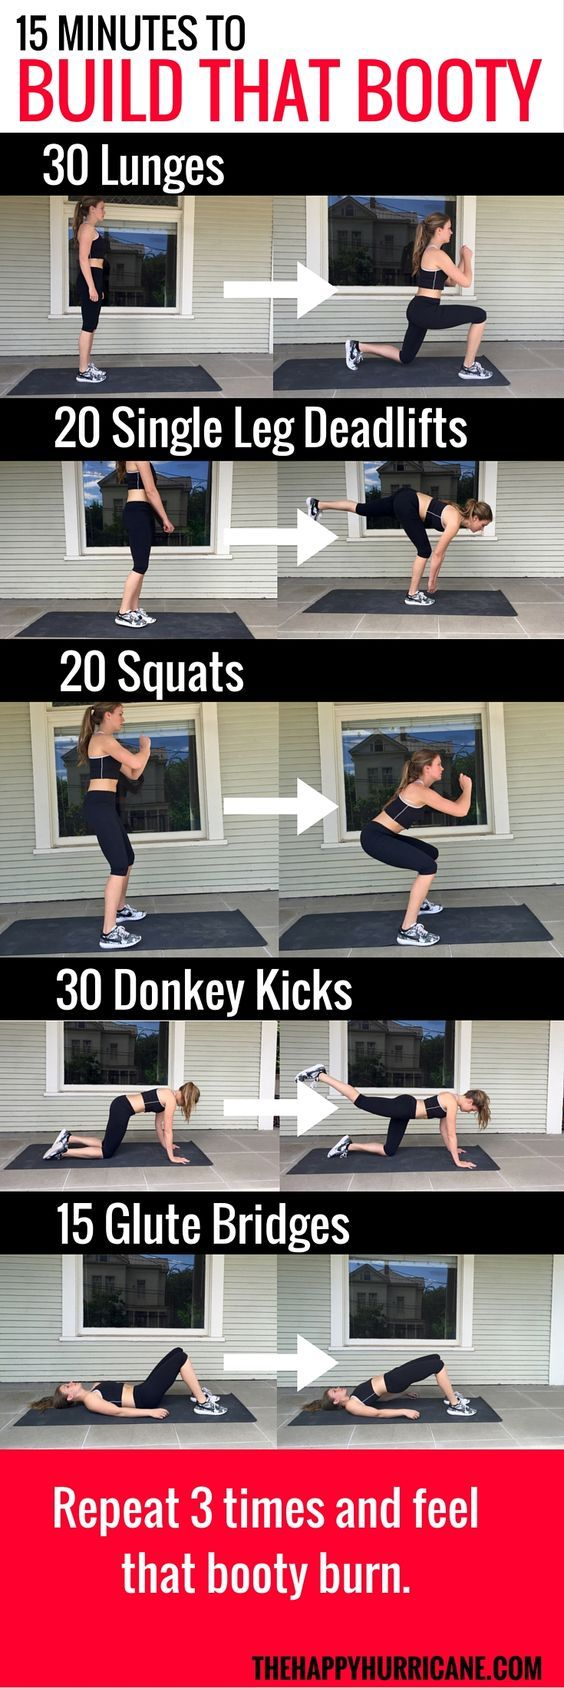 Here's a 15 minute booty workout to help you get the perfect pageant butt. Get more tips and ideas at ThePageantPlanet.com!